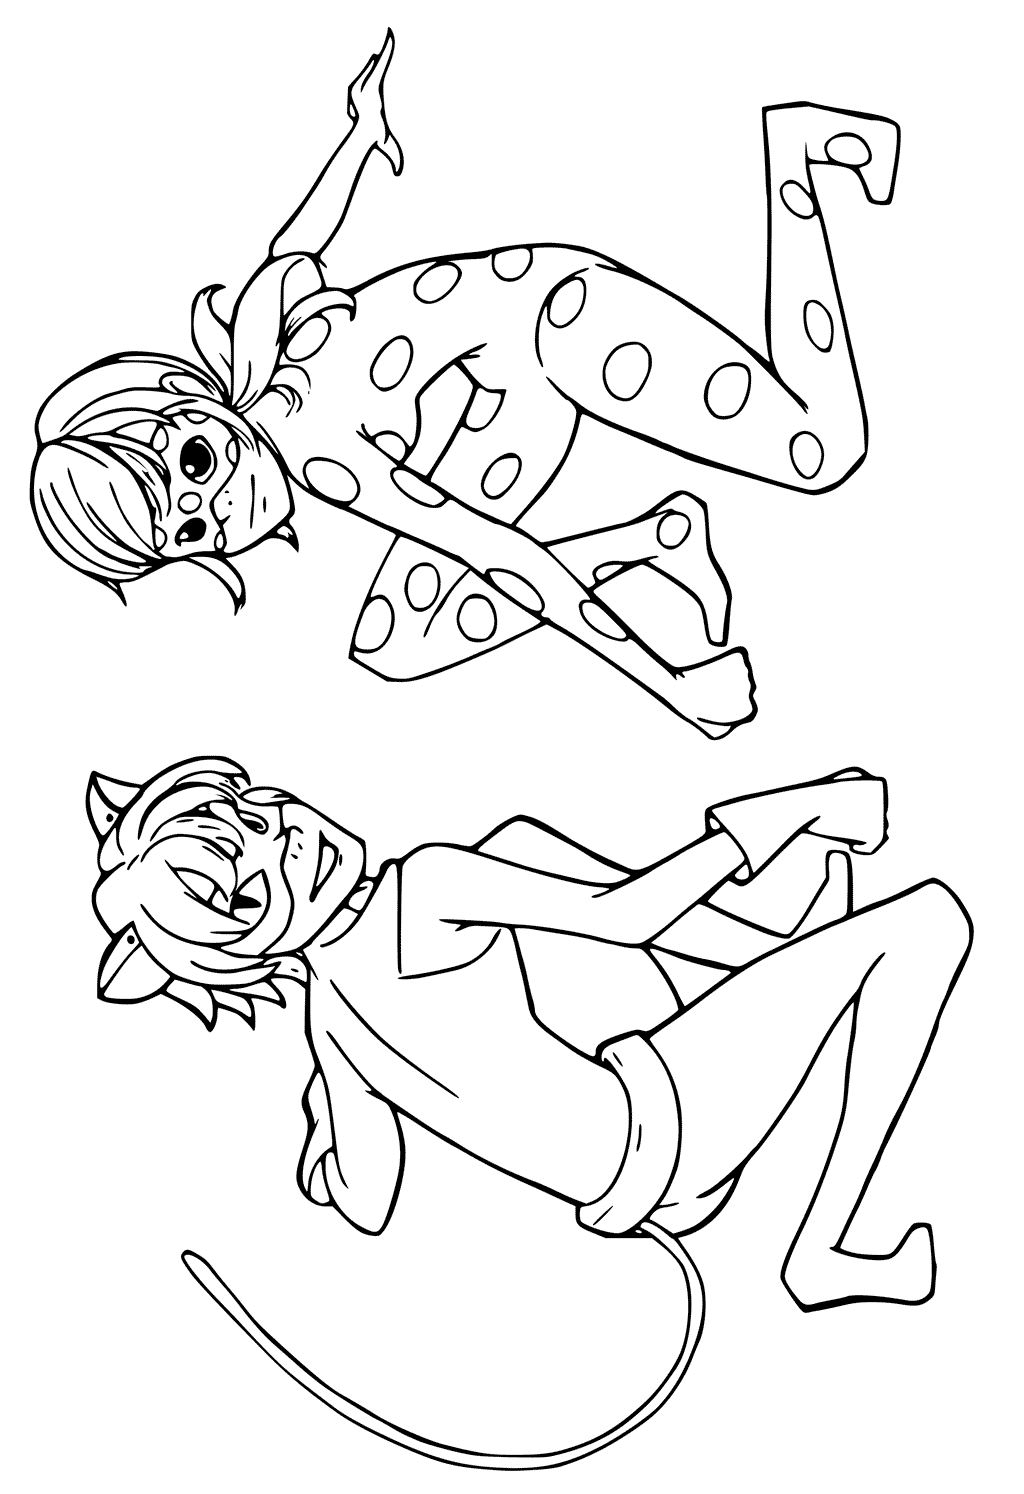 - Kids-n-fun.com Coloring Page Miraculous Tales Of Ladybug And Cat